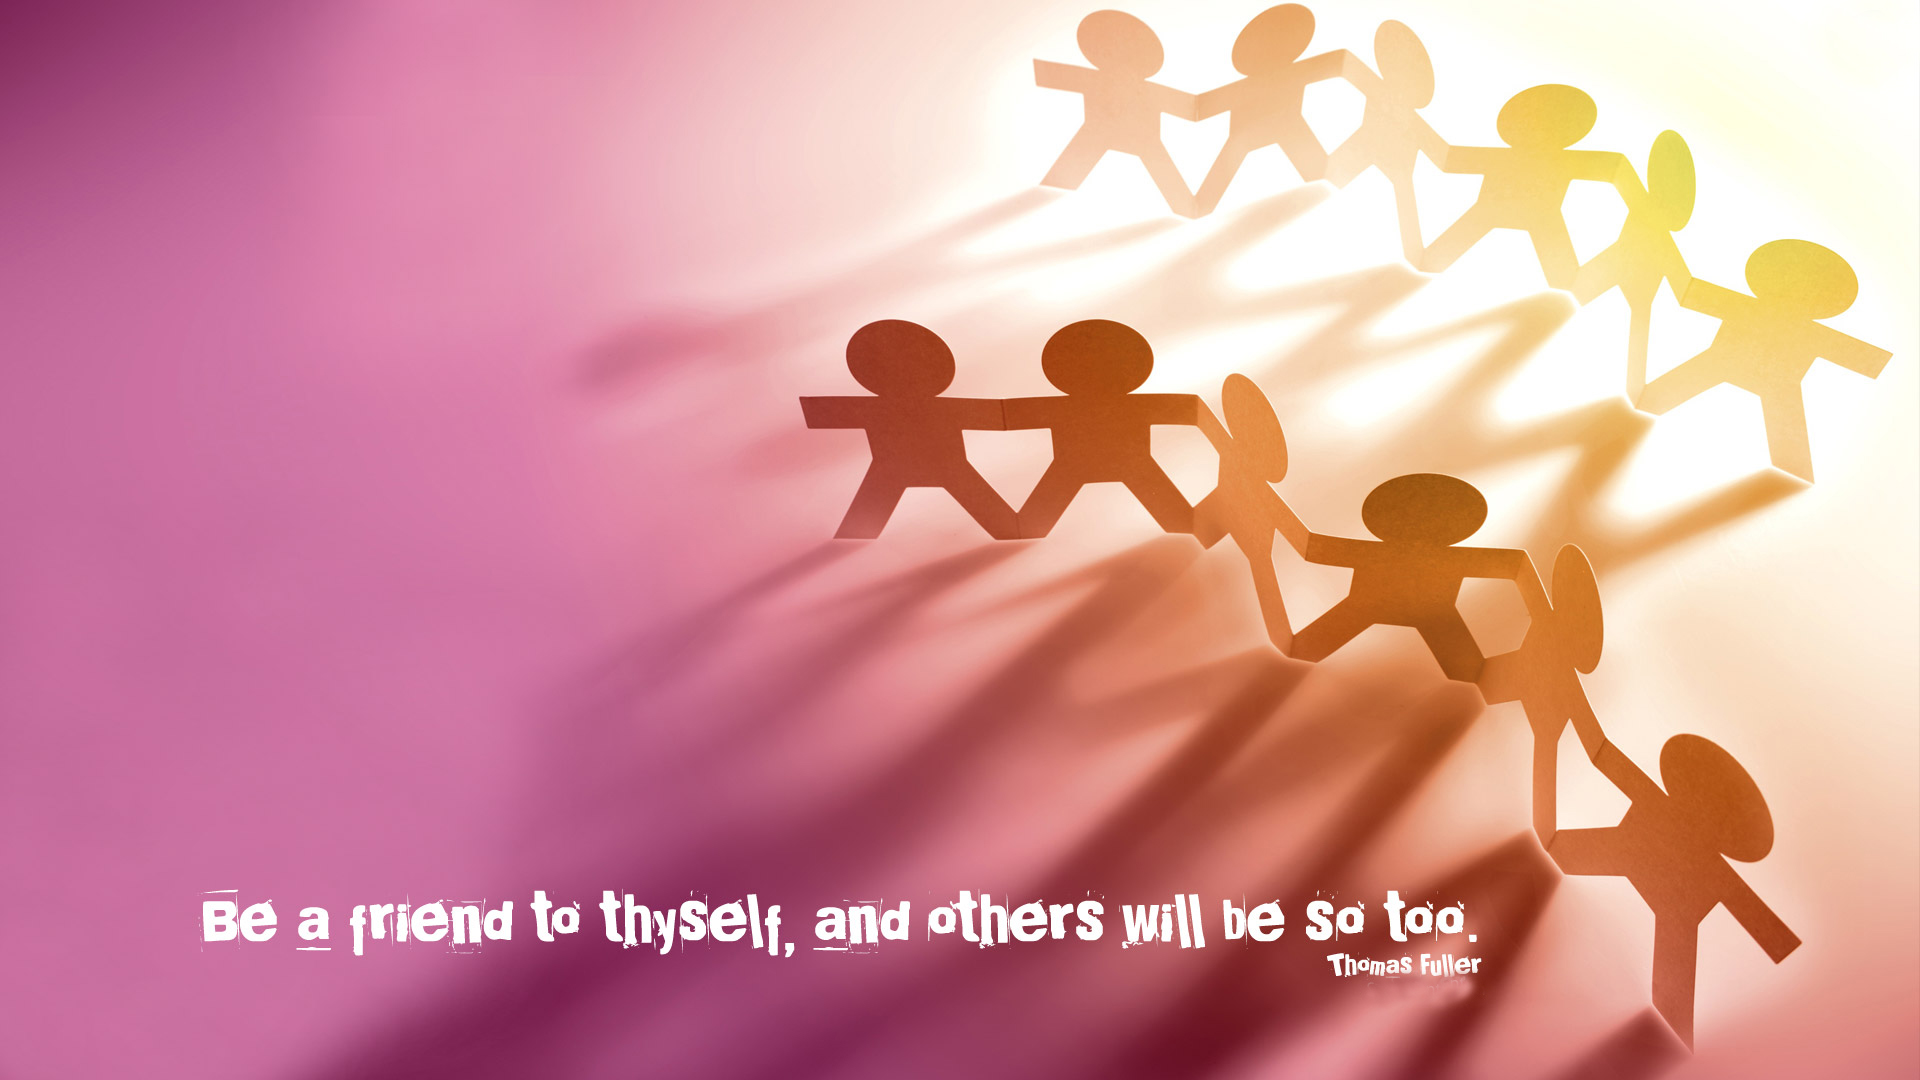 friendship quotes wallpapers wallpaper high definition high